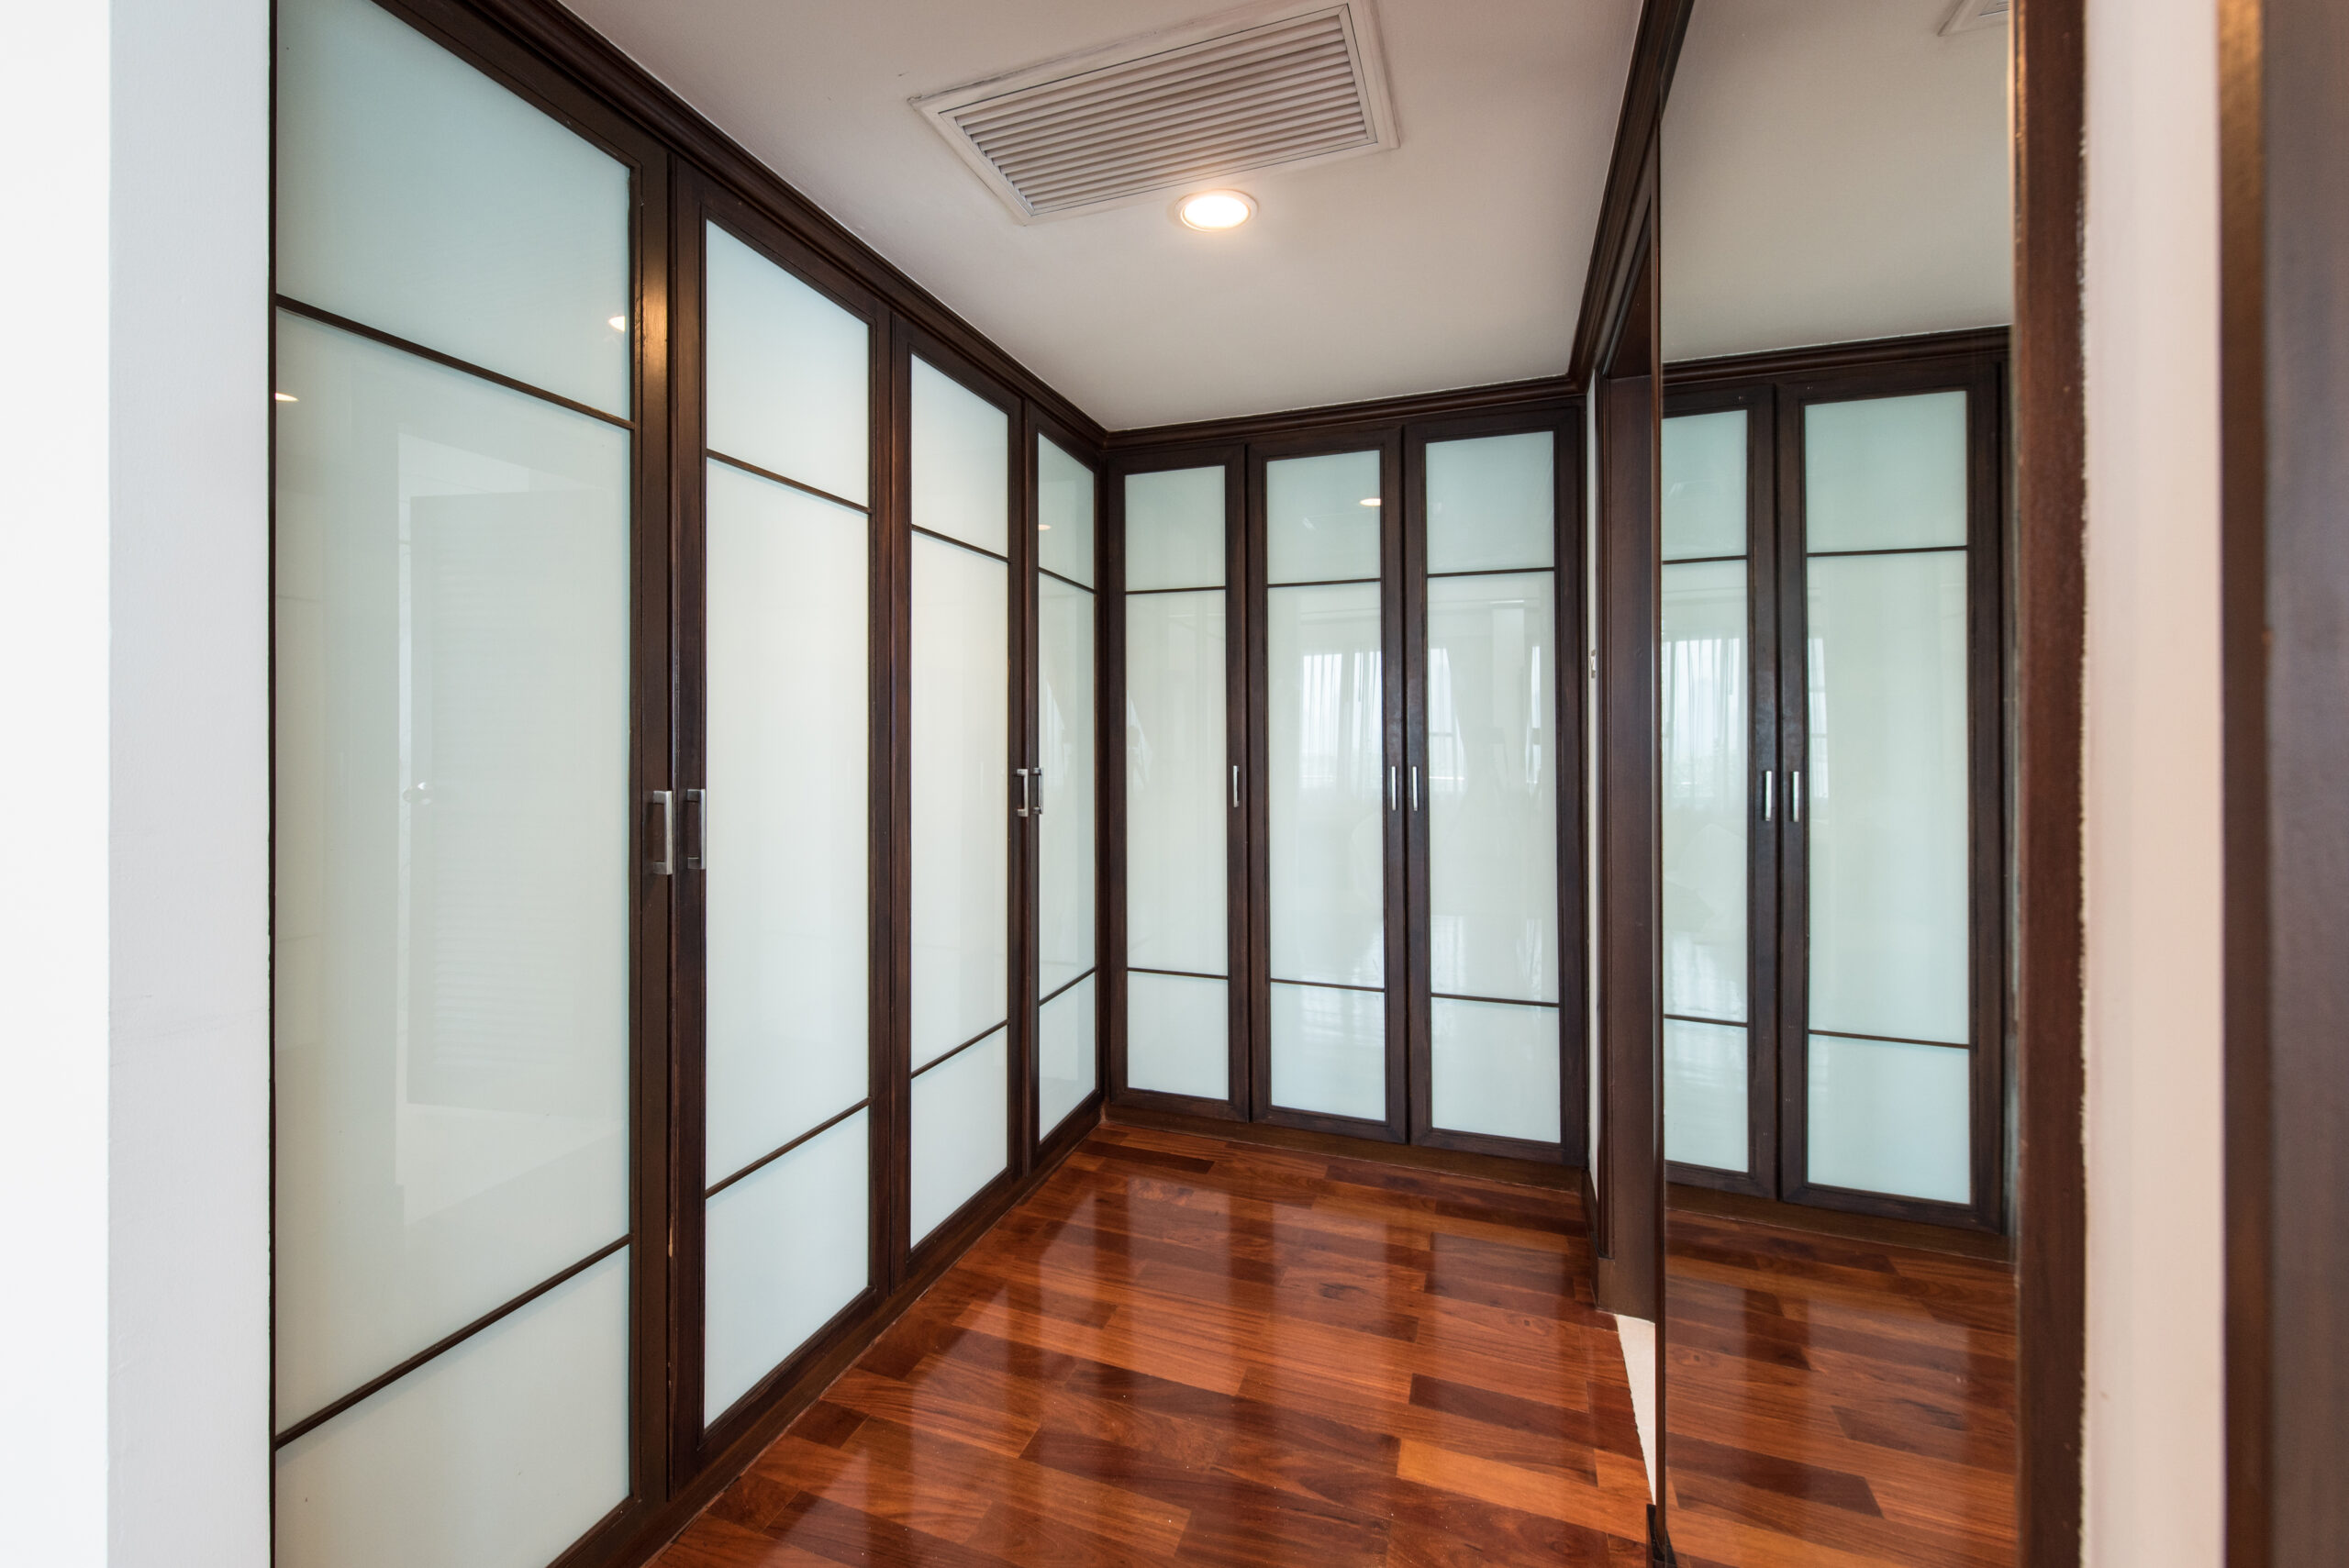 Bangkok Property Condo Apartment House Real Estate For Rent in Asok Impressive & Impeccable Place